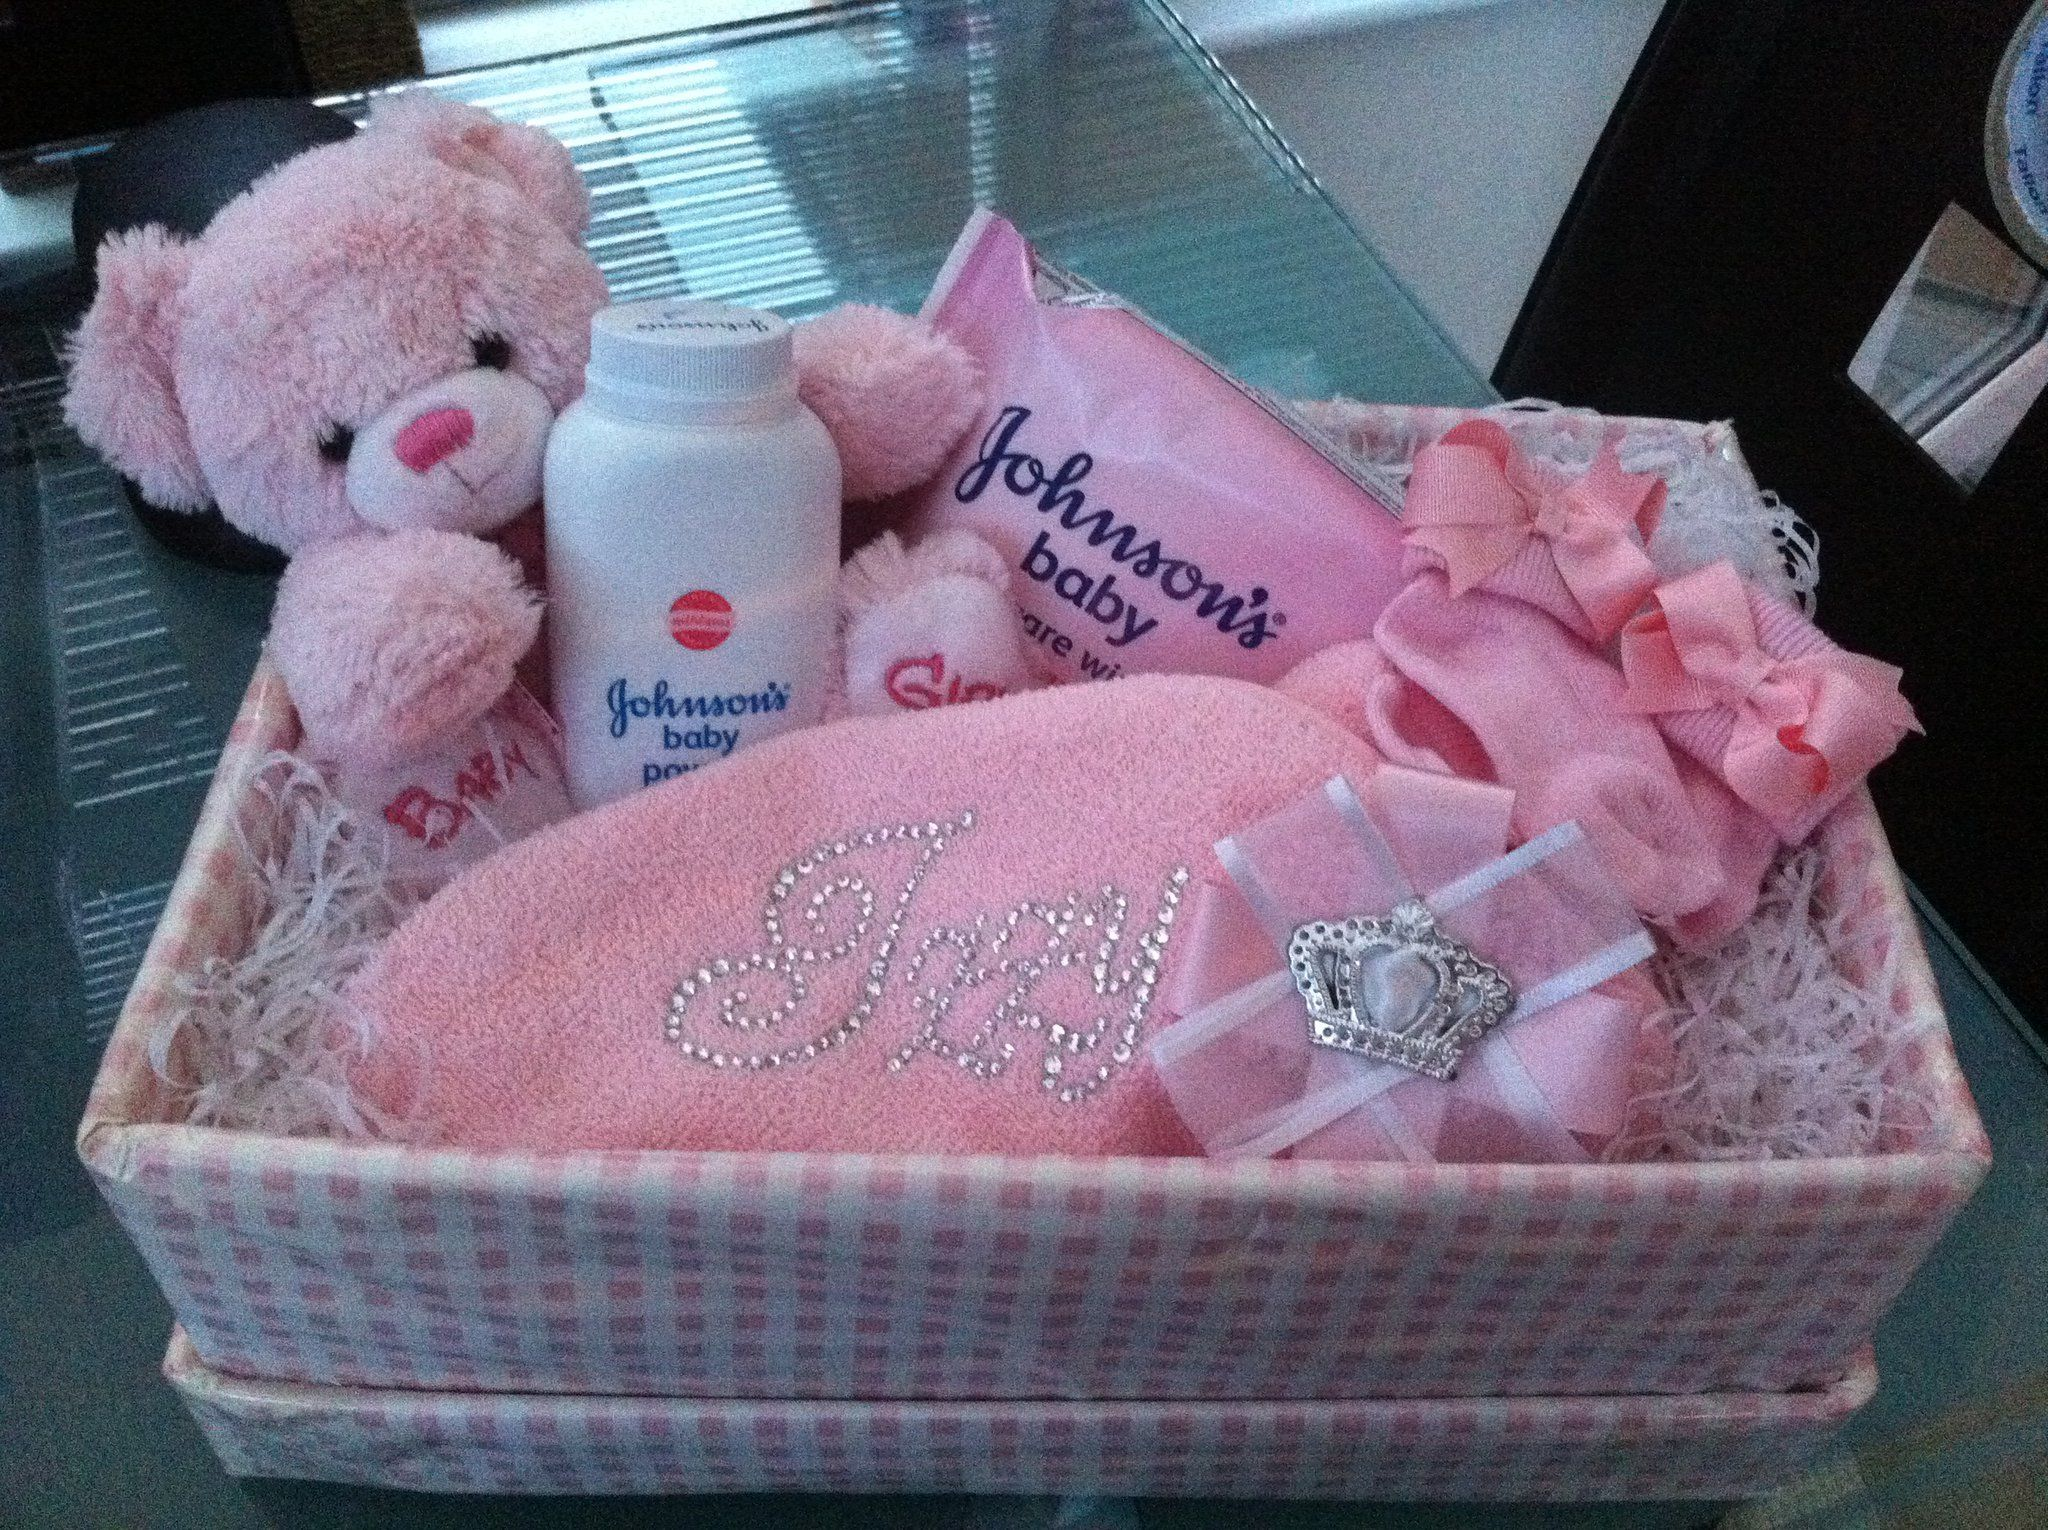 Hospital gifts gift shop displays hospital gifts baby